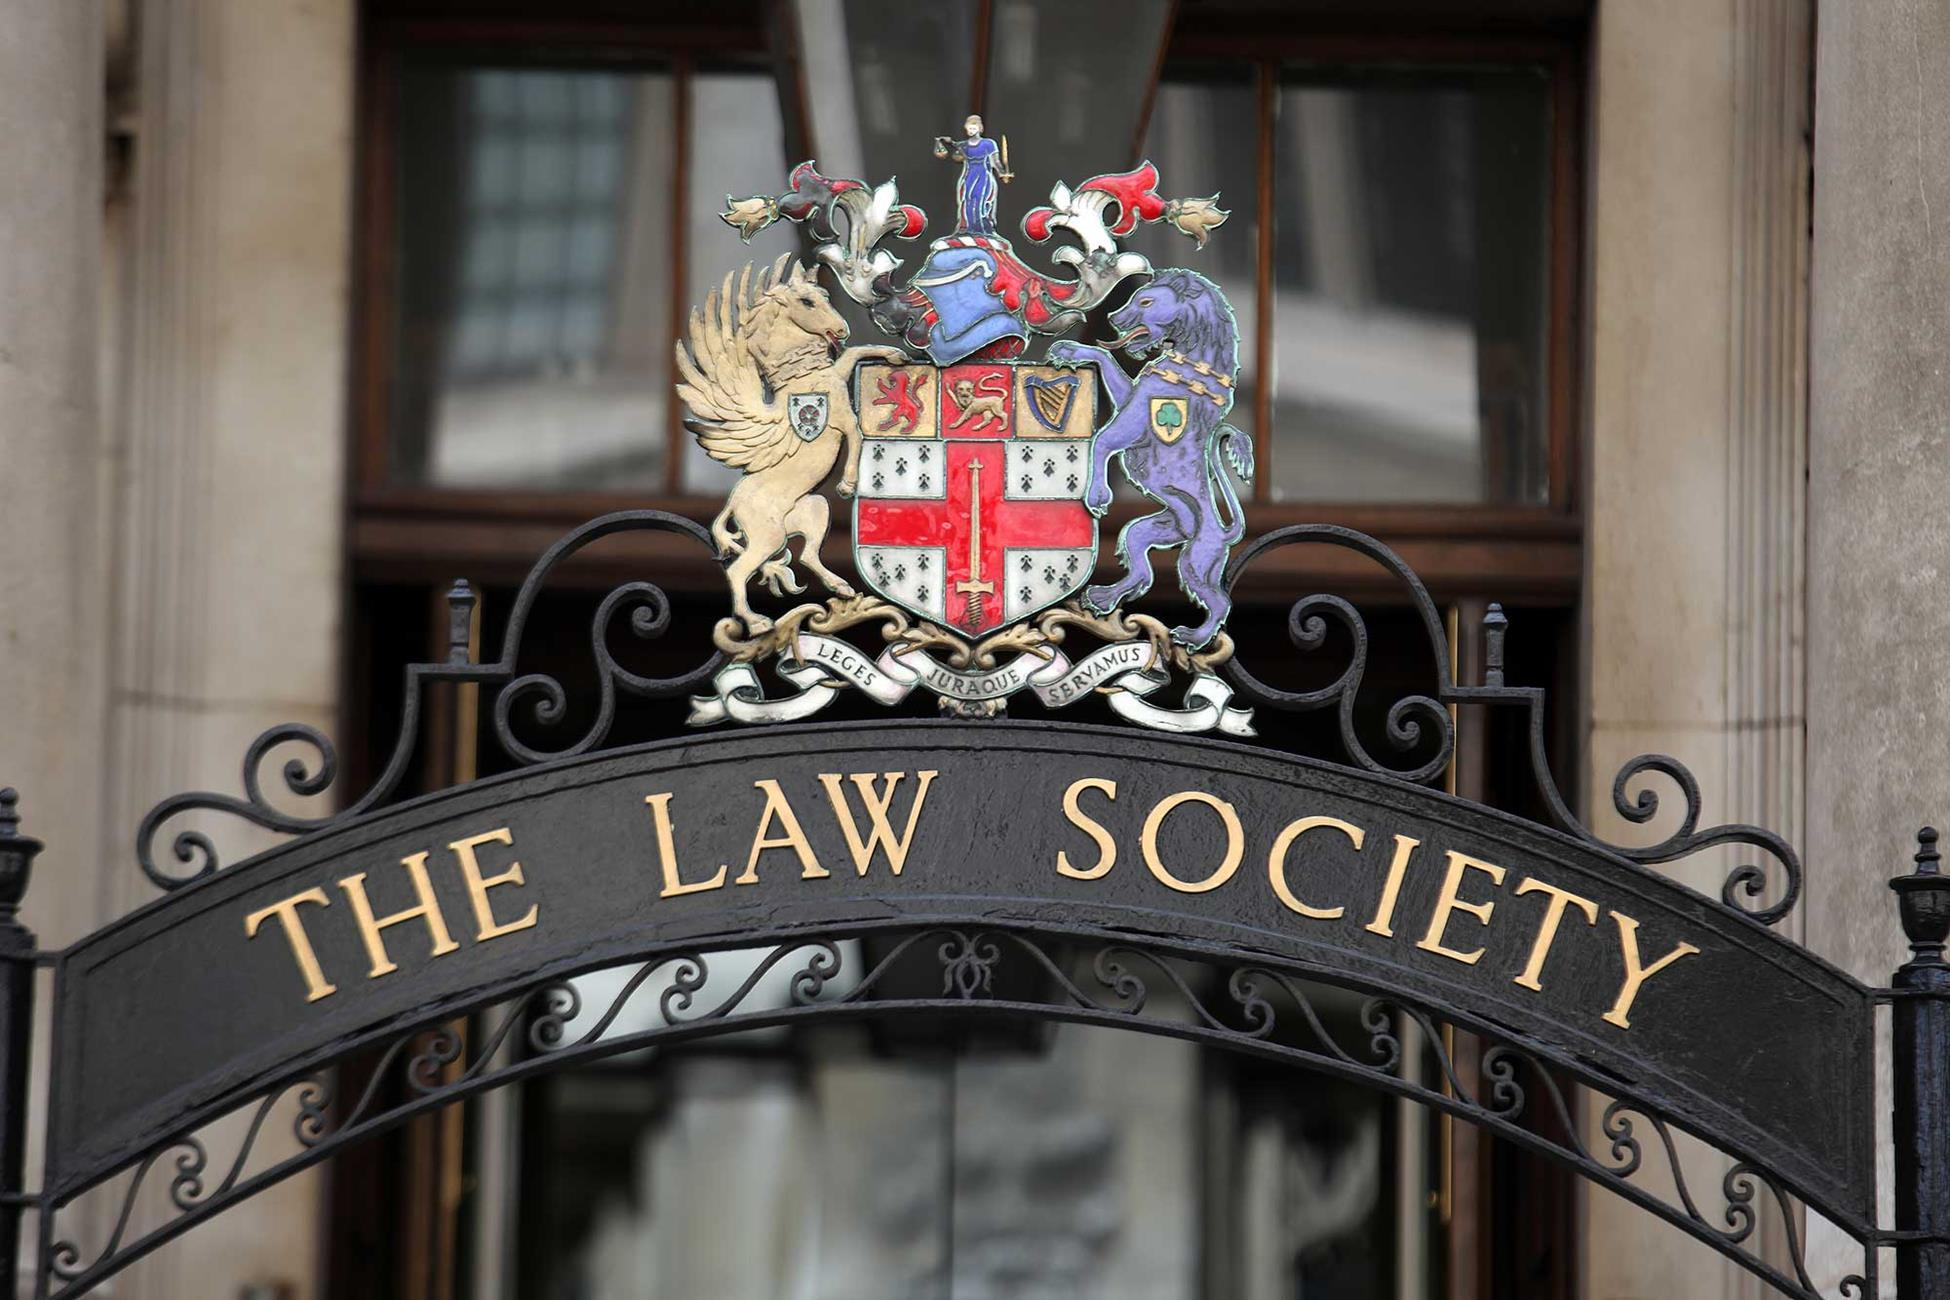 Law Society sign